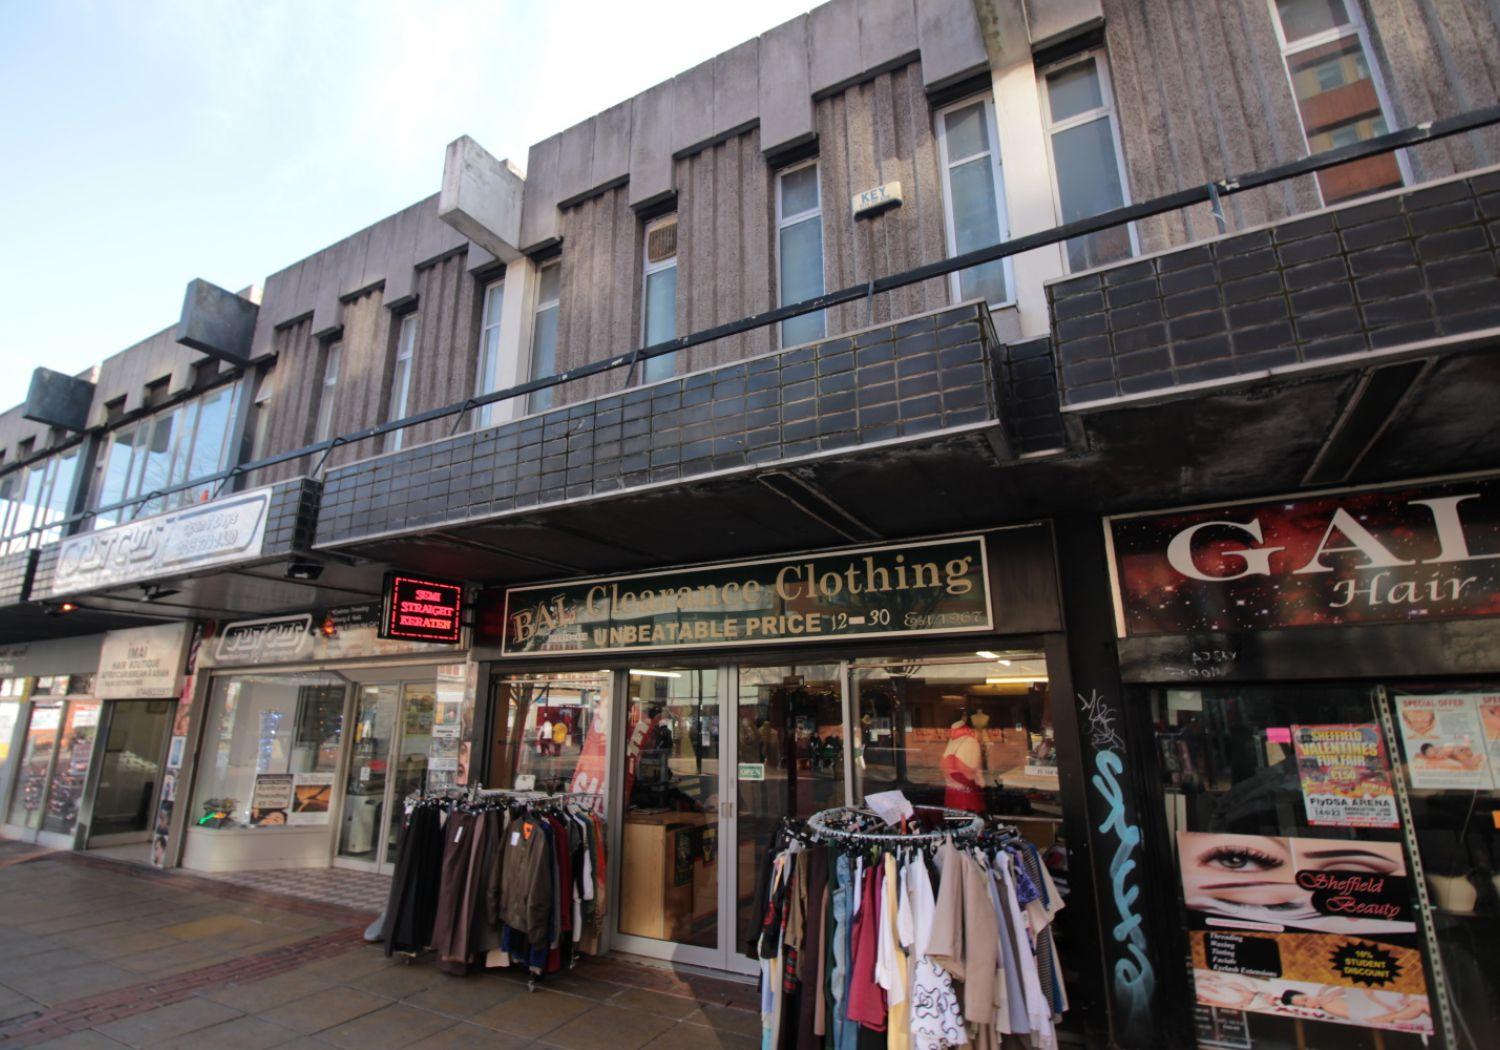 Two-storey retail sales shop in Sheffield city centre.